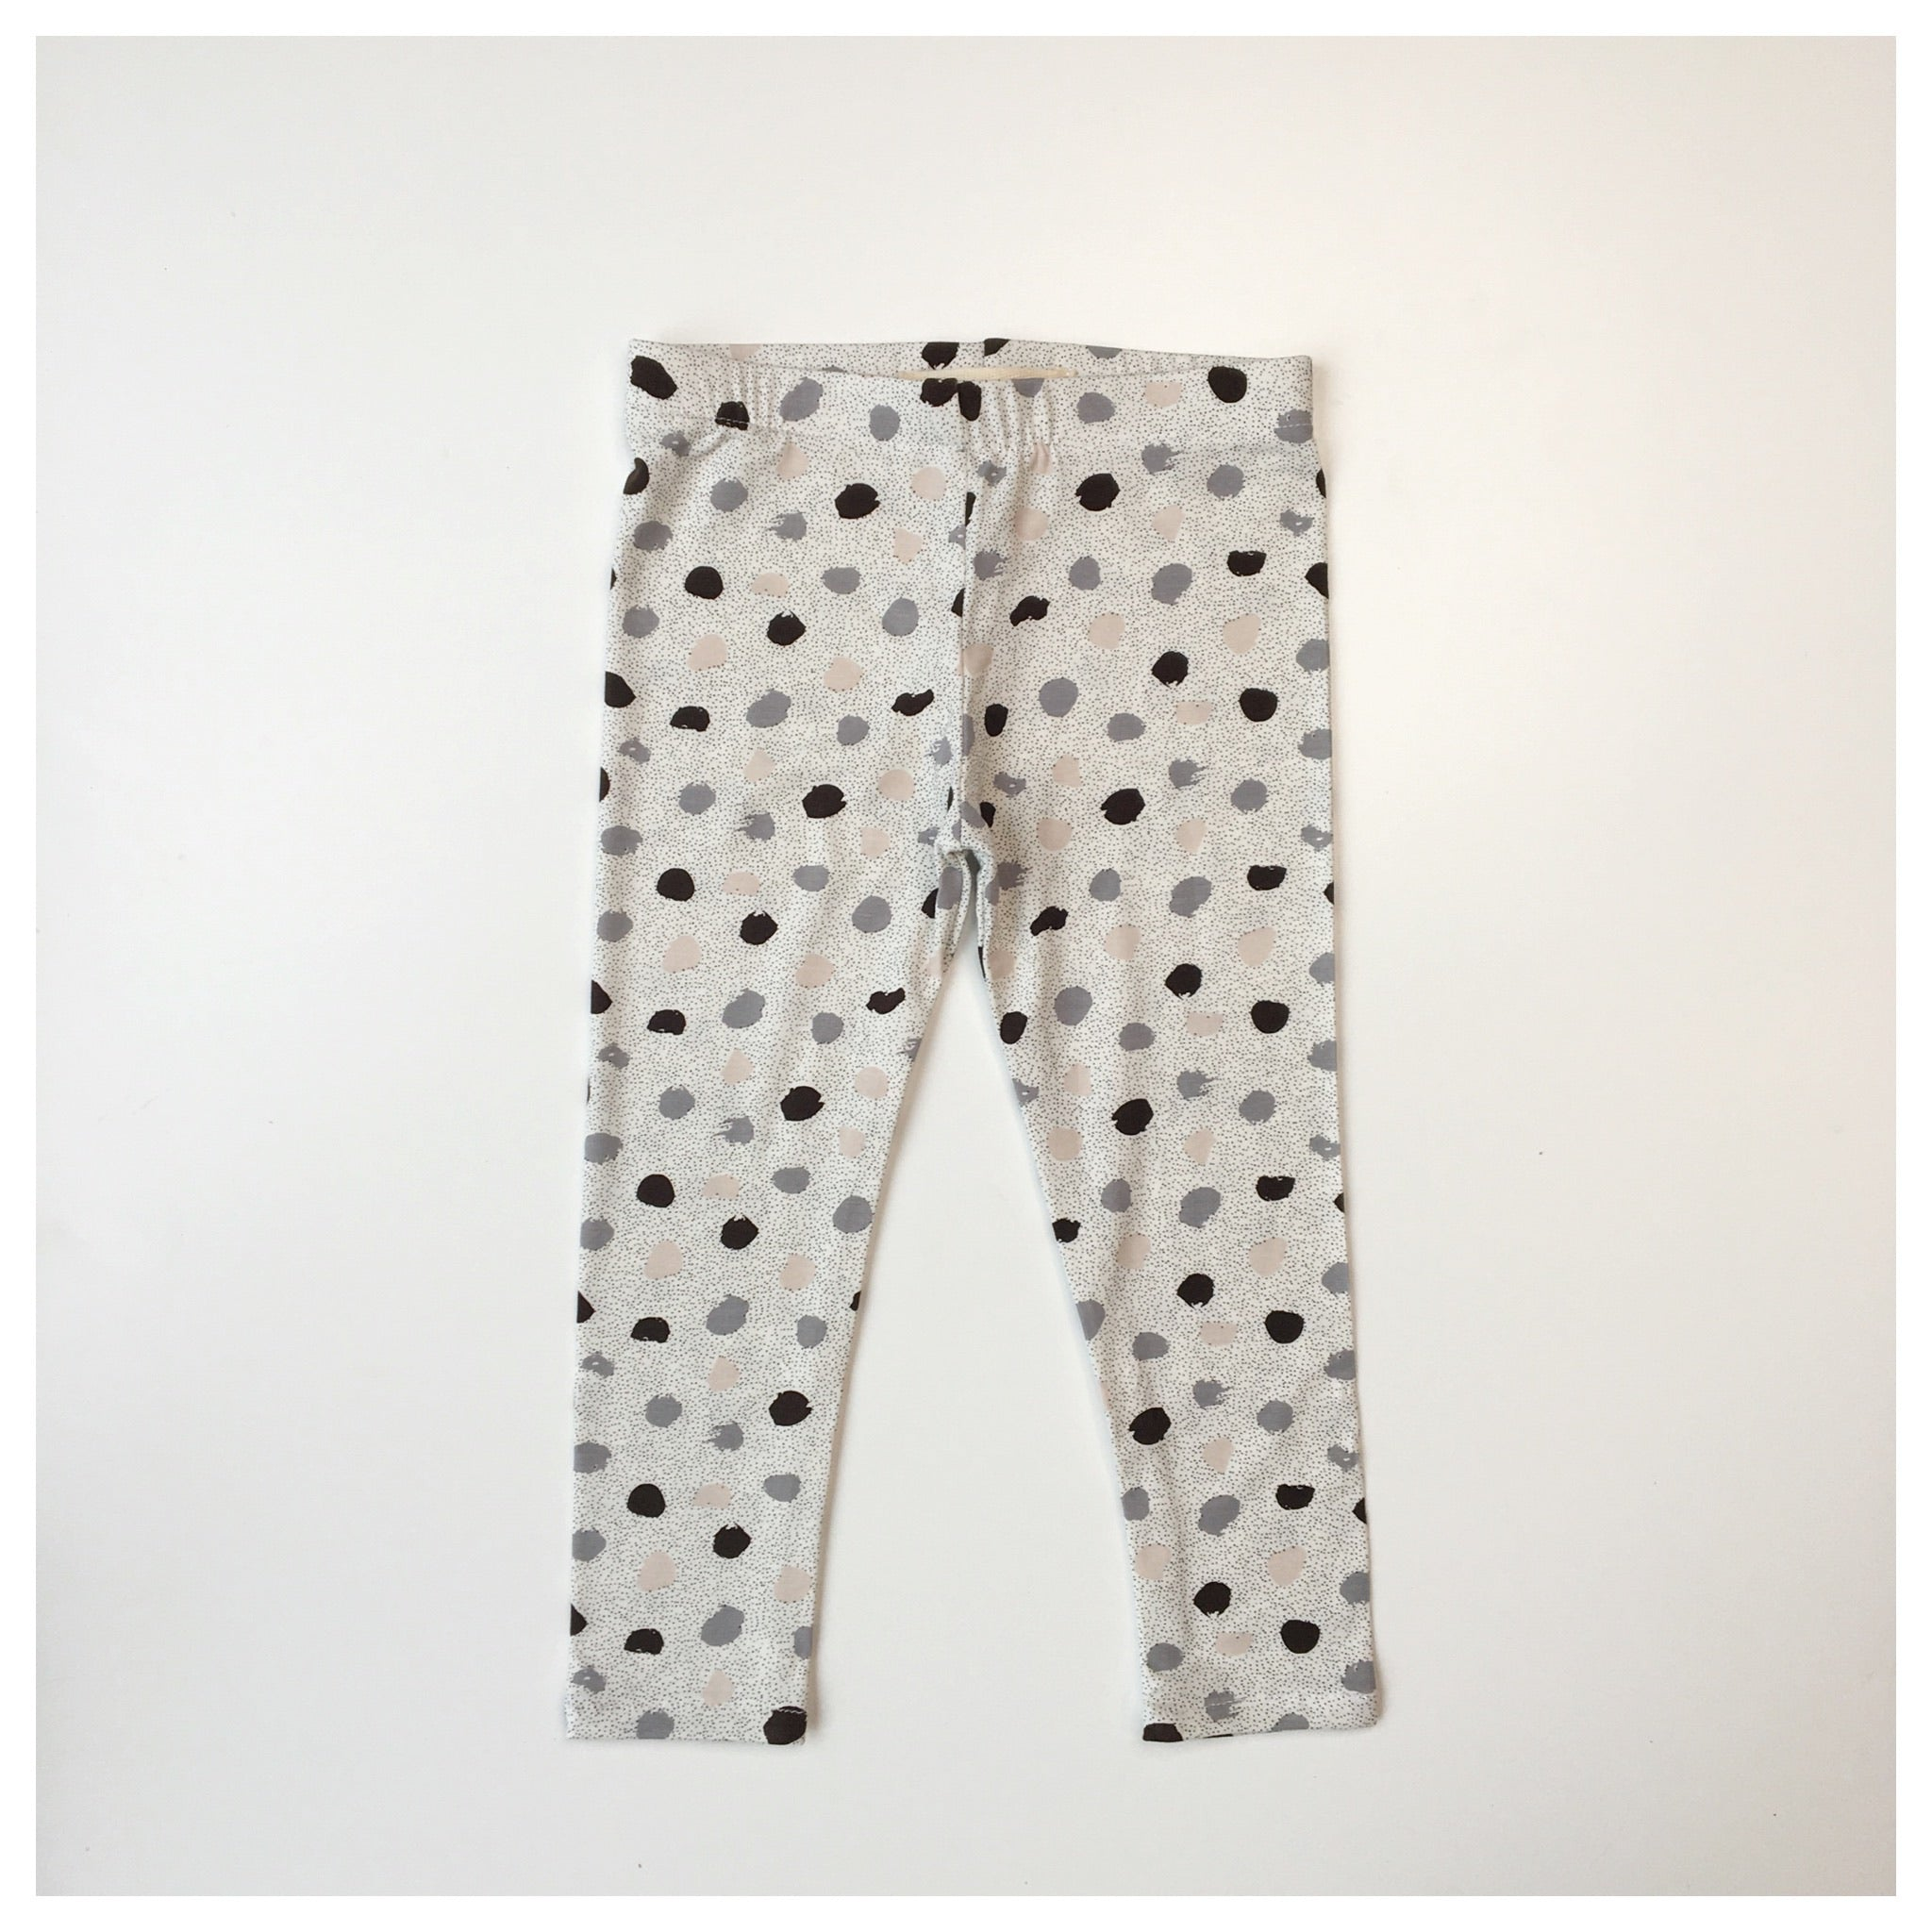 Dots bamboo leggings